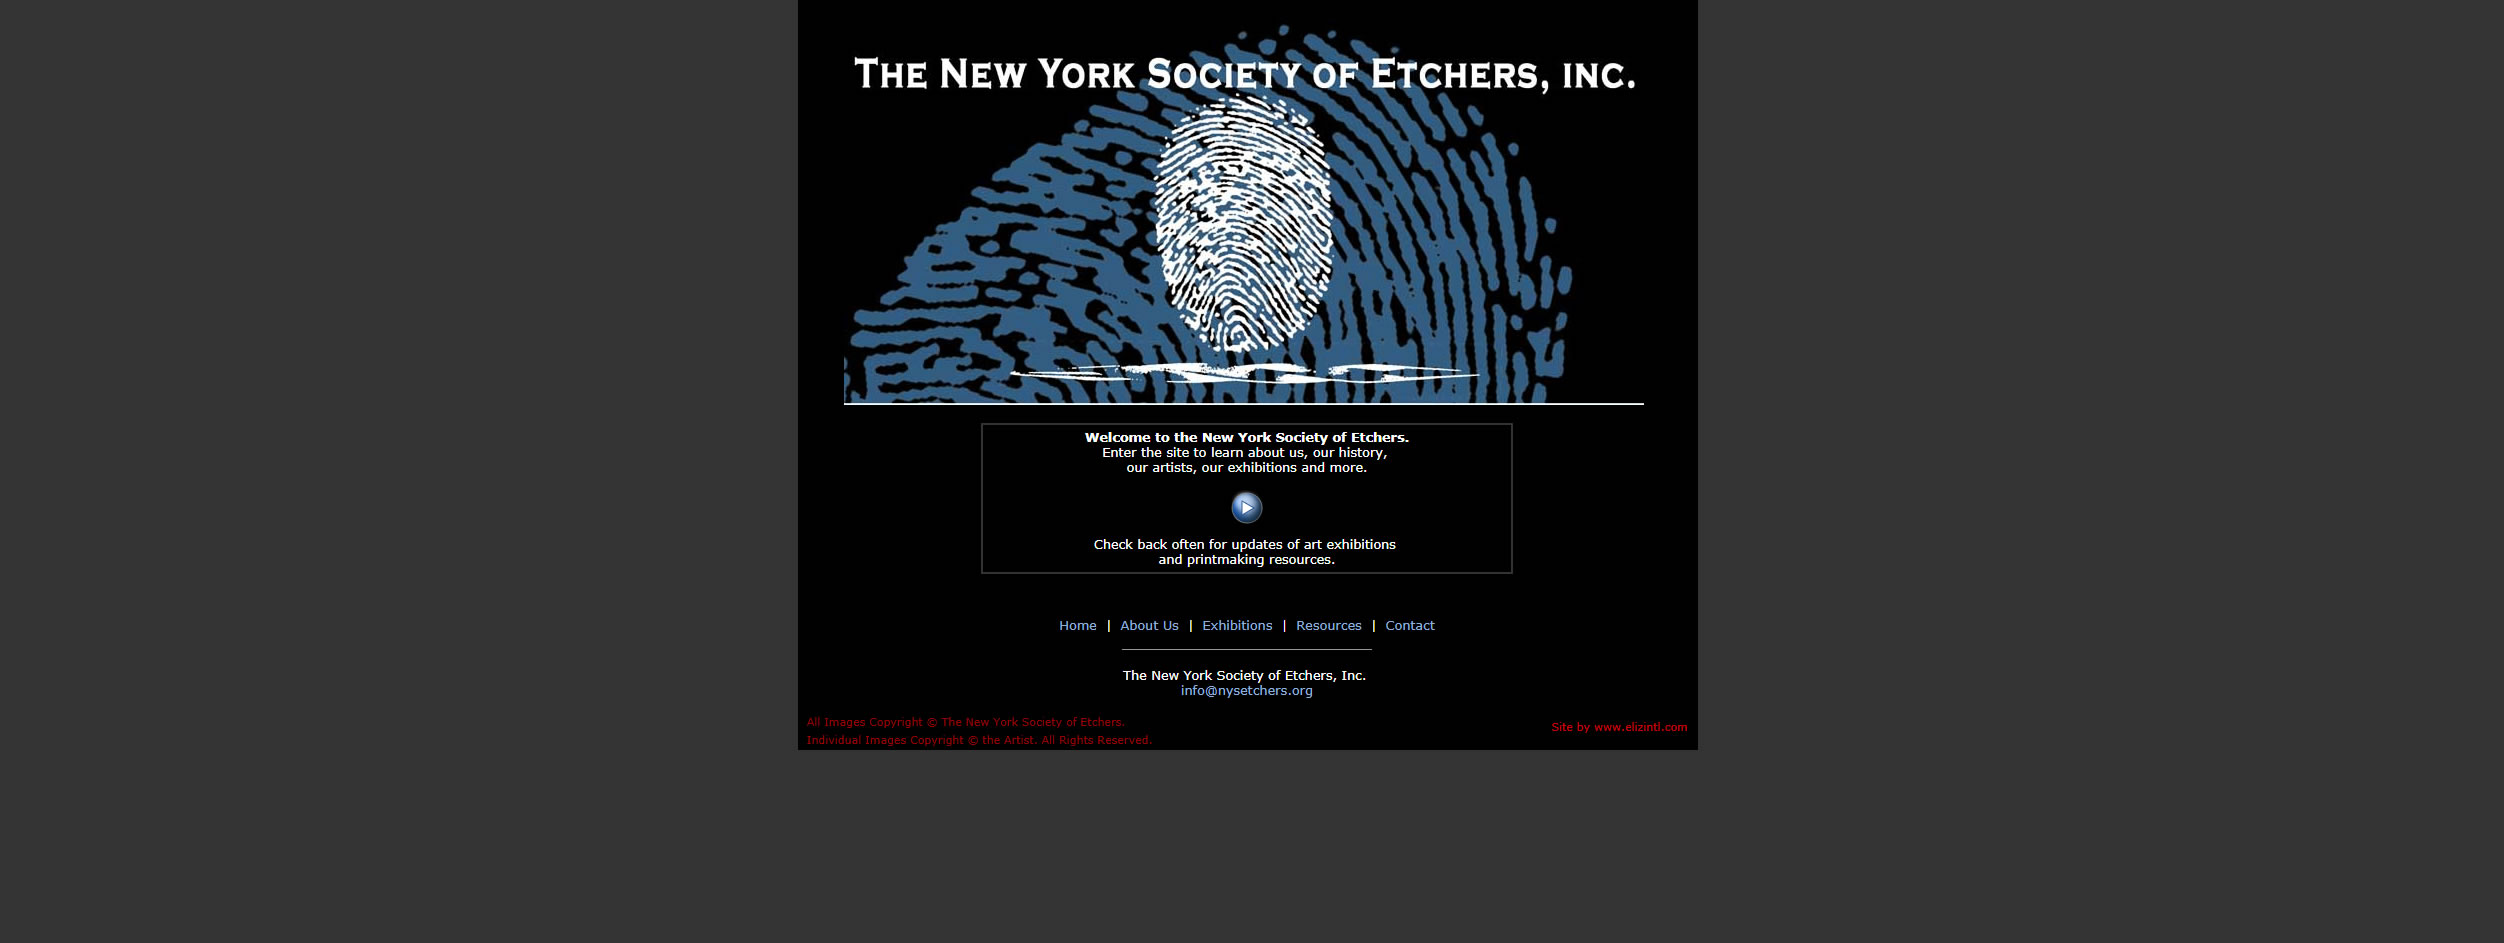 the_new_york_society_of_etchers_galeria_de_gravura